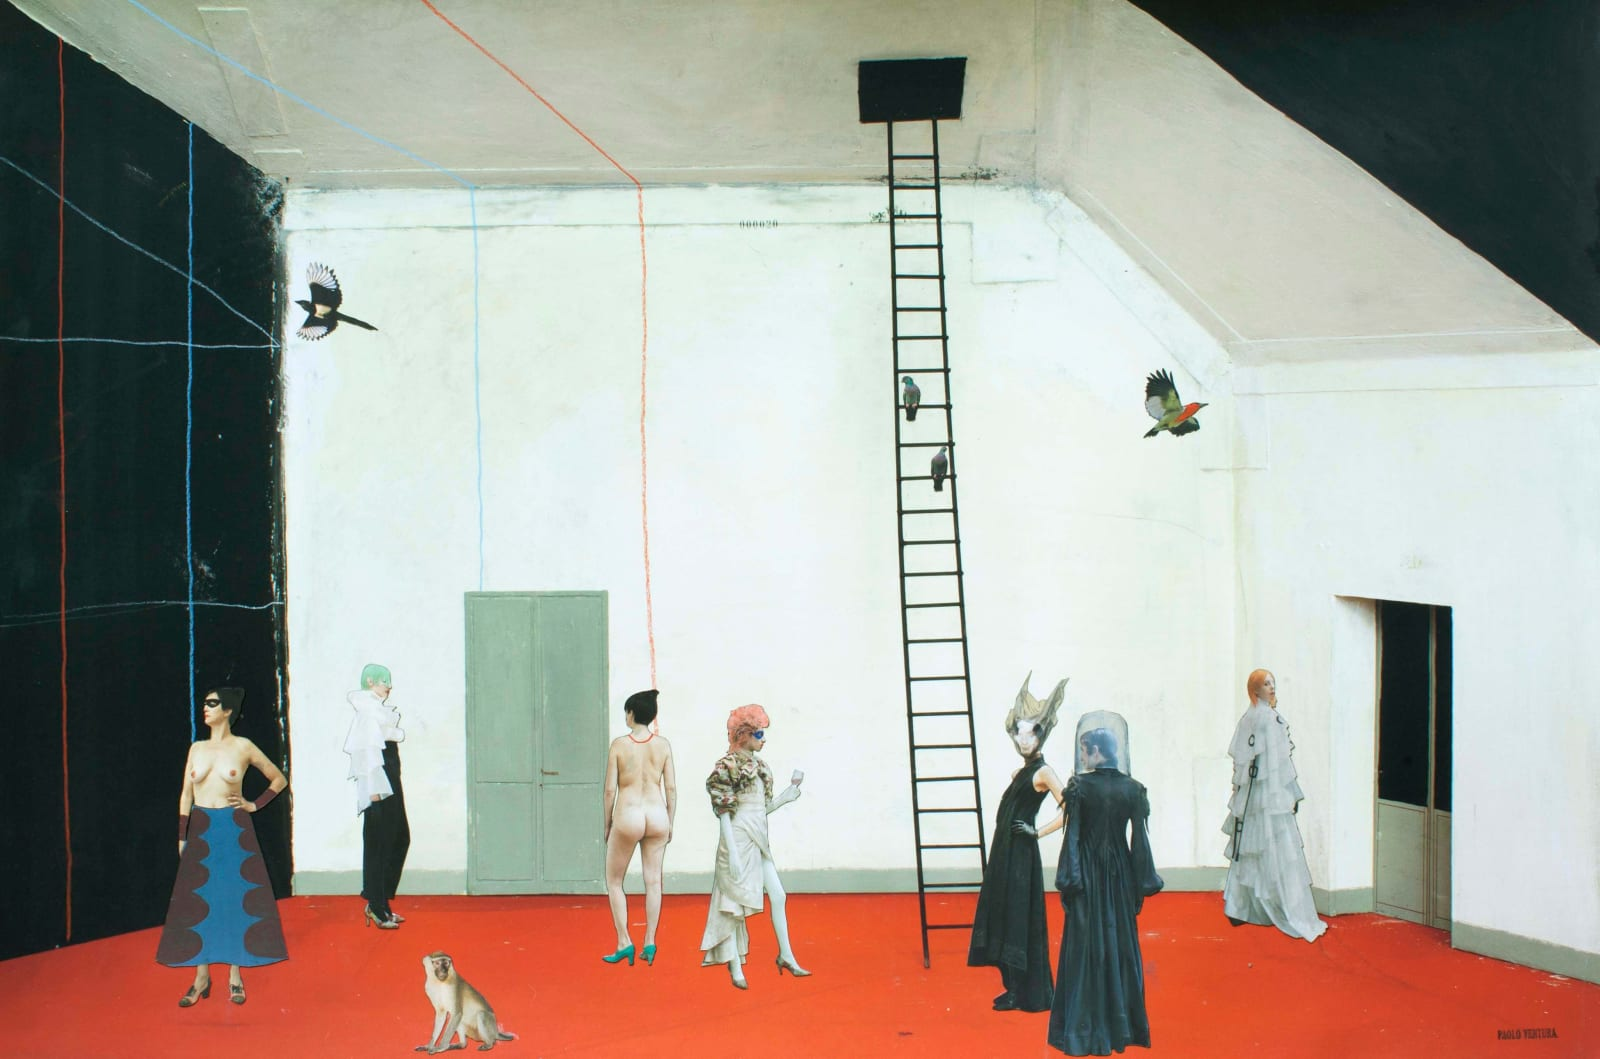 Paolo Ventura The Trombone Player, people in costumes at a surreal party